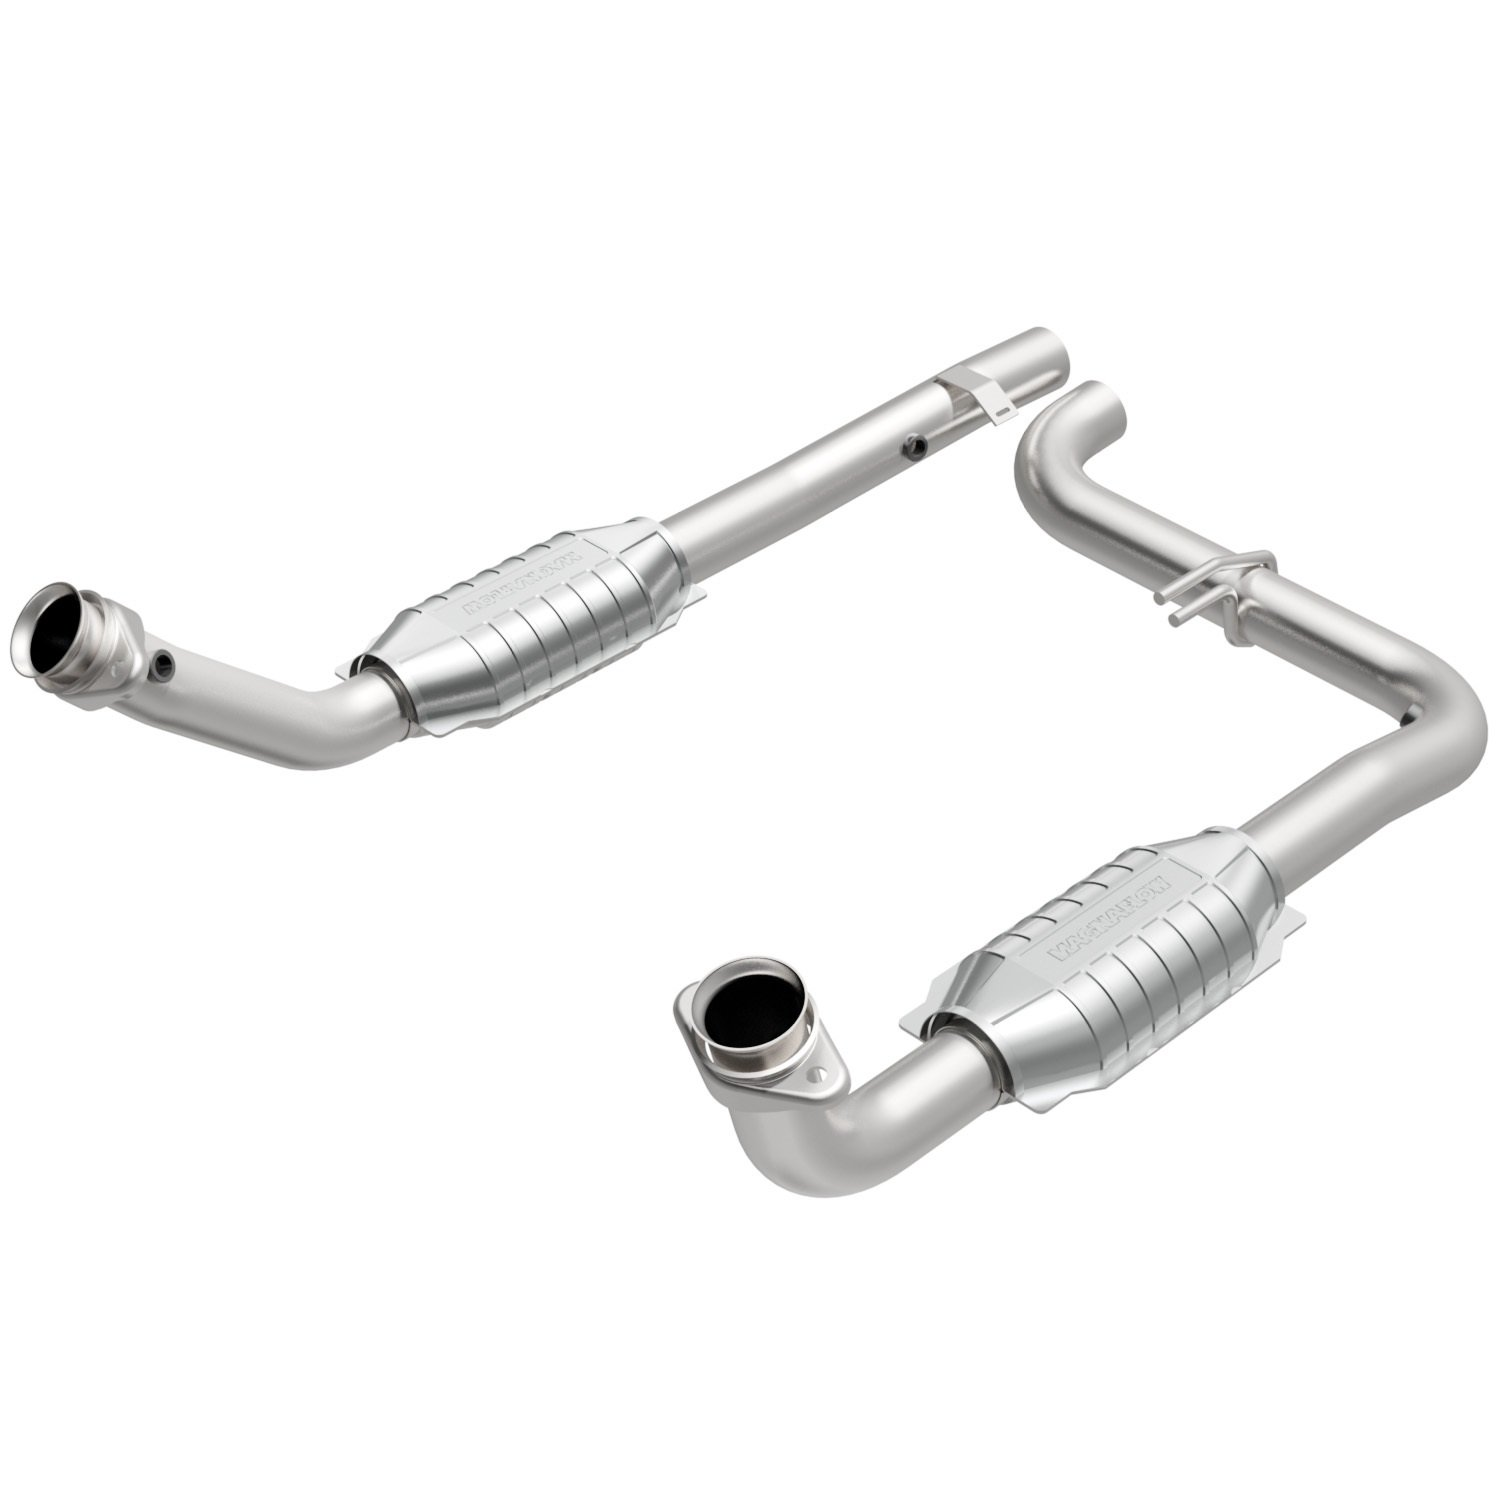 MagnaFlow 49123 Direct Fit Catalytic Converter Non CARB compliant